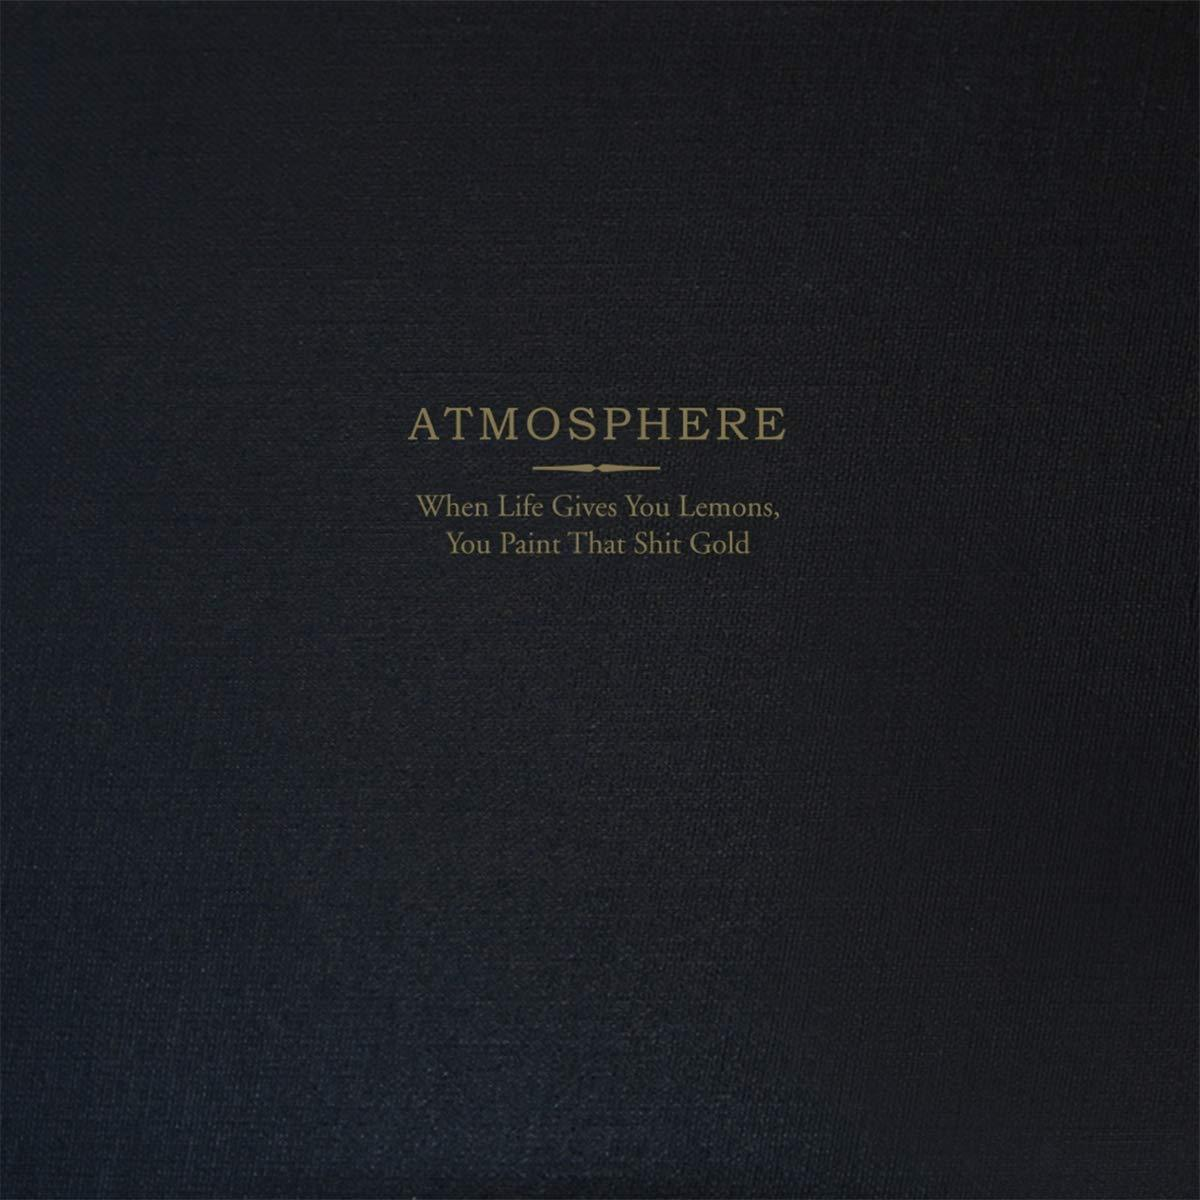 Atmosphere - When Life Gives You Lemons, You Paint That Shit Gold (Deluxe) [2LP] (10th Anniversary, Gold Colored Vinyl, lemon-scented labels, hard cover book, , hand-numbered, limited to 3000) - Urban Vinyl | Records, Headphones, and more.